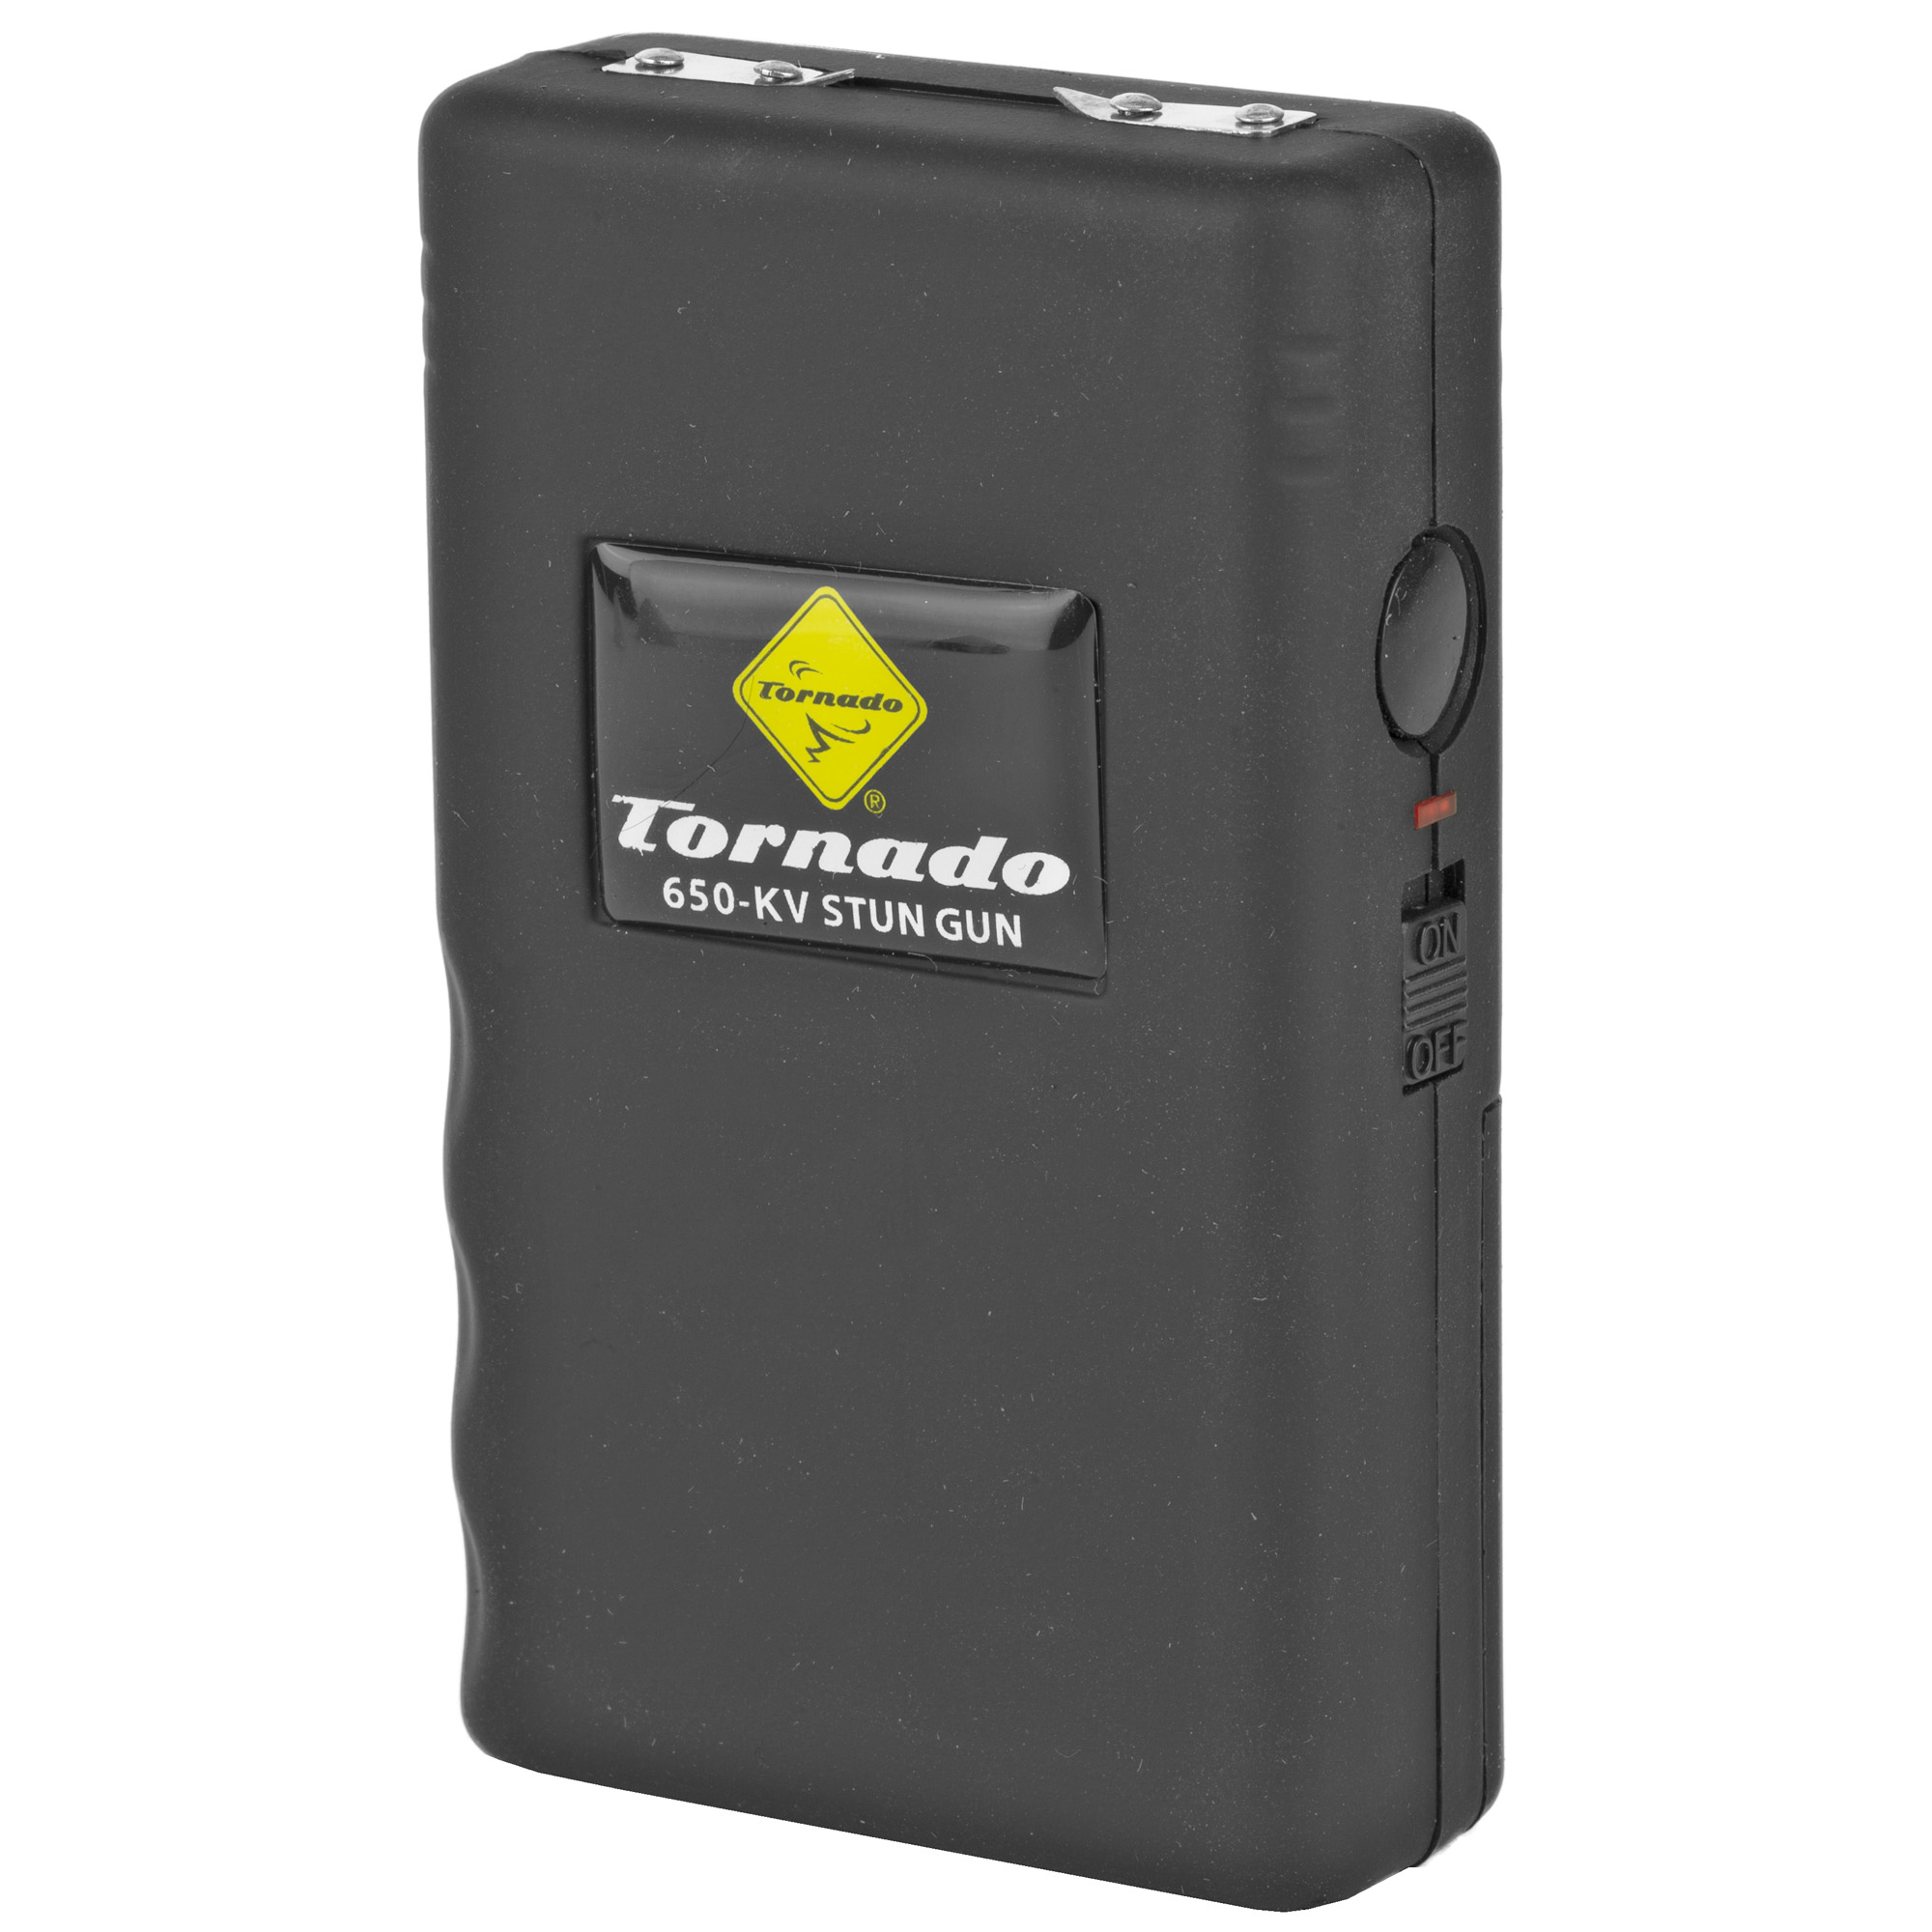 "The Tornado 650V Stun Gun generates 650""000 volts of stun power. Features a safety switch with LED light and soft rubber coating with secure contour grip."